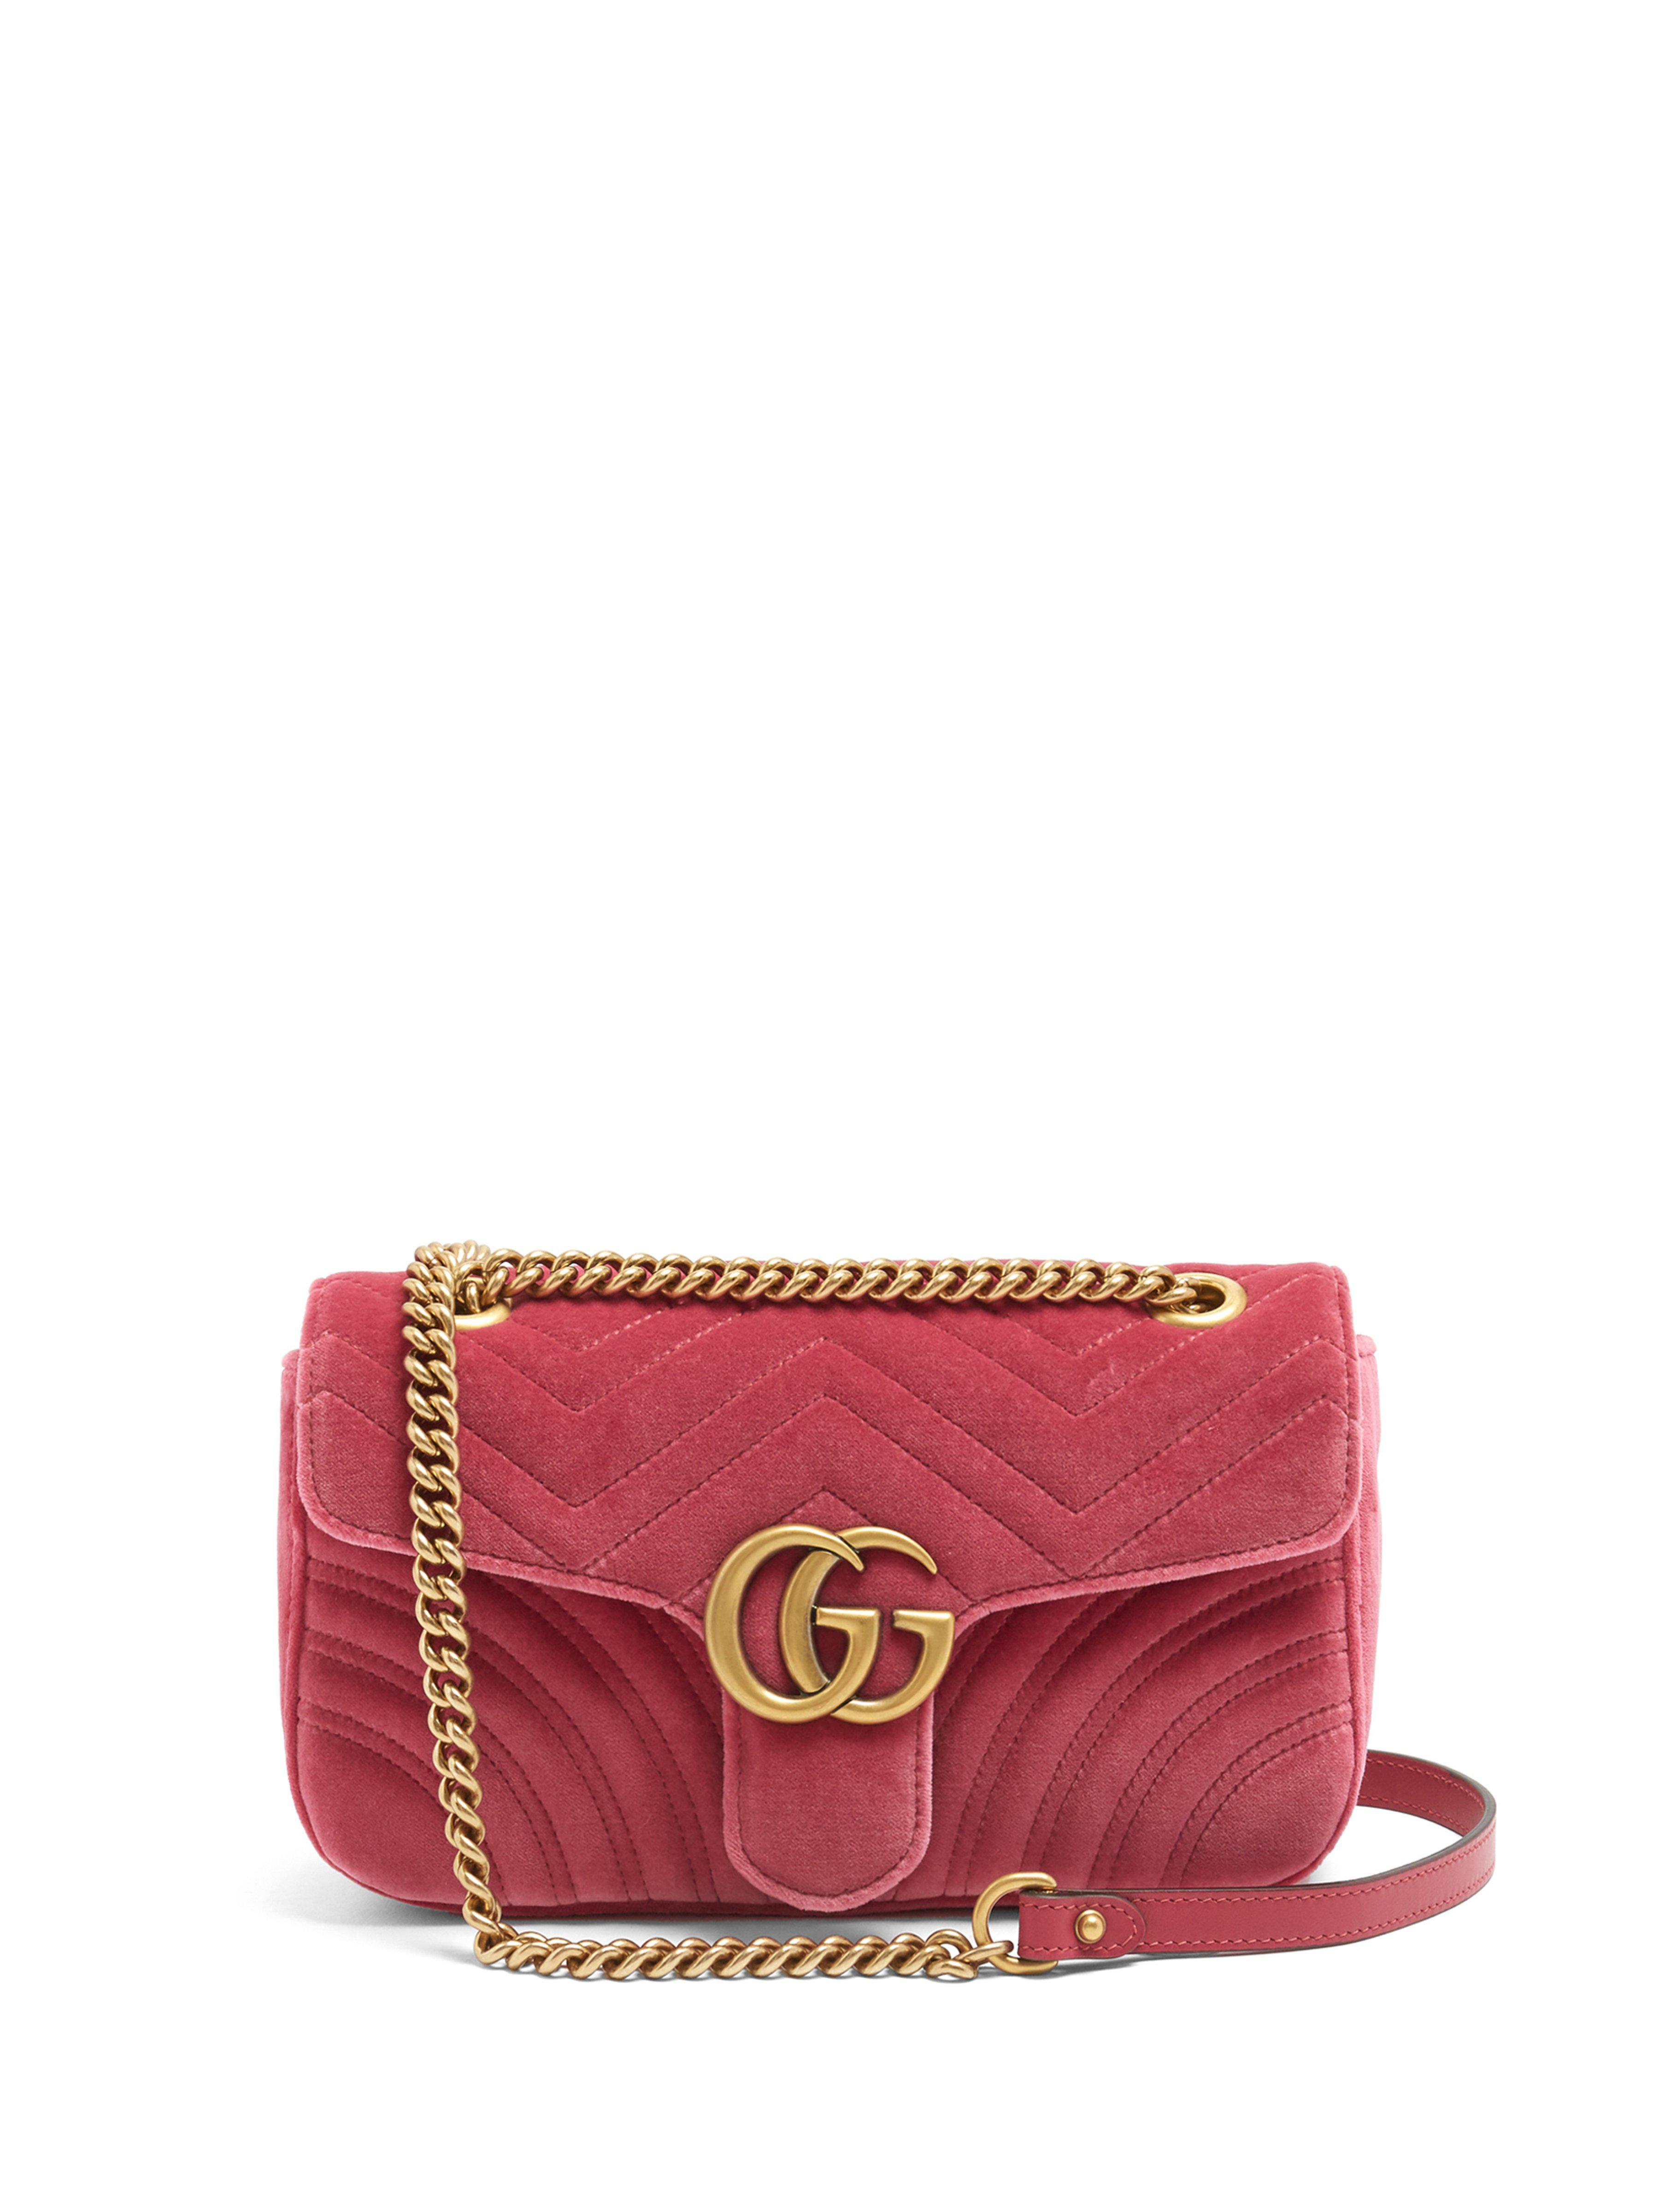 49321e7a021 Gucci Gg Marmont Small Quilted Velvet Cross Body Bag in Pink - Lyst